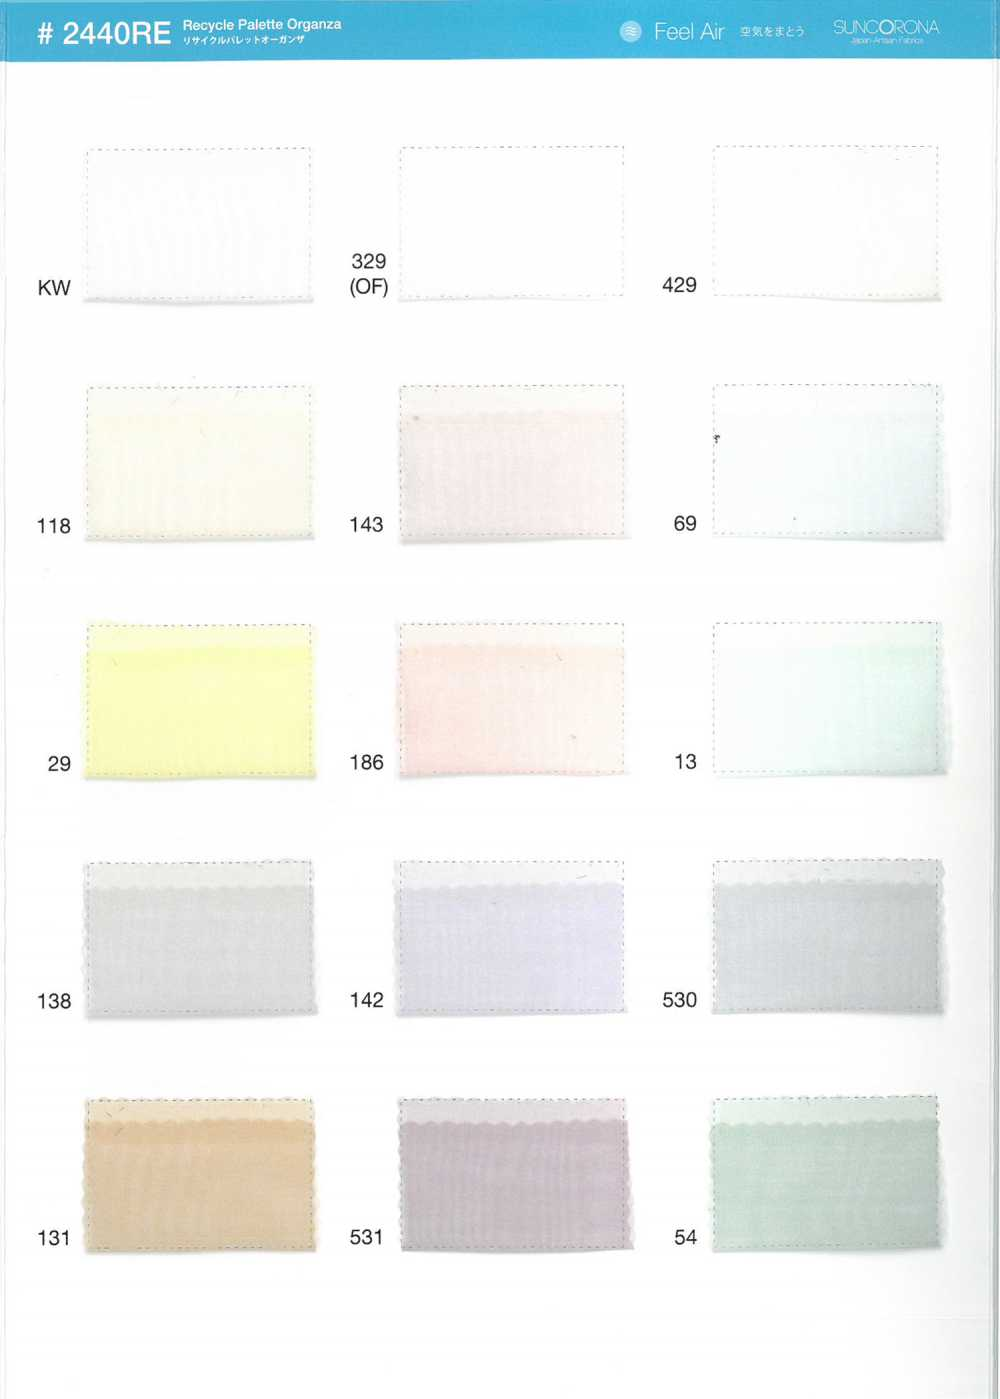 2440RE Recycled Pallet Organza[Textile / Fabric] Suncorona Oda Sub Photo